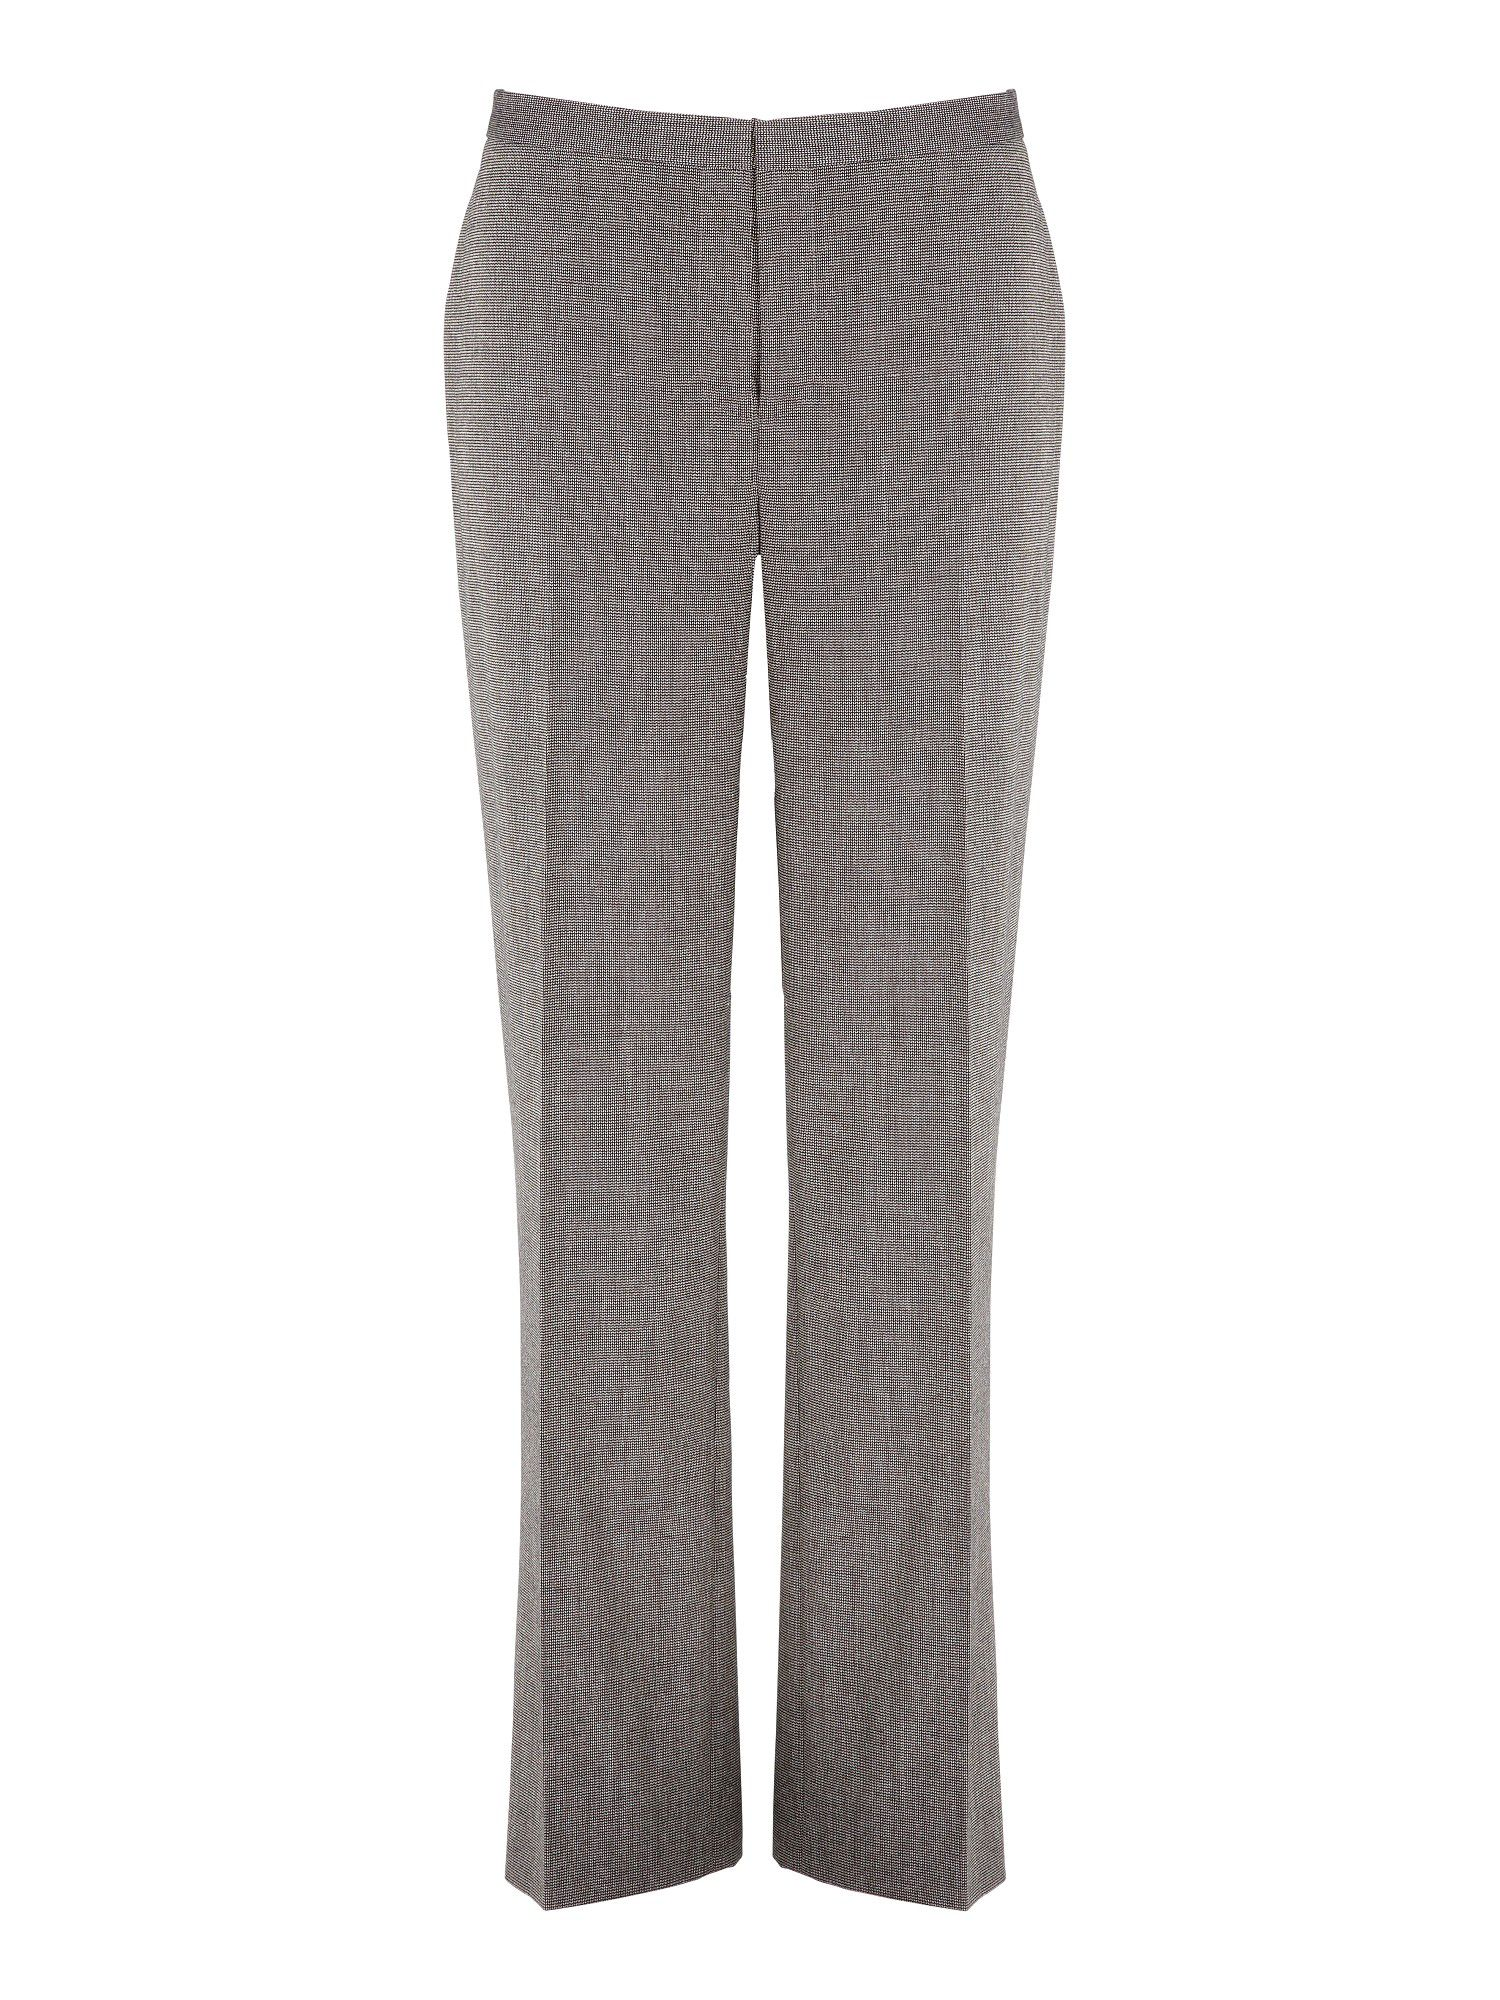 Cocoa textured trouser